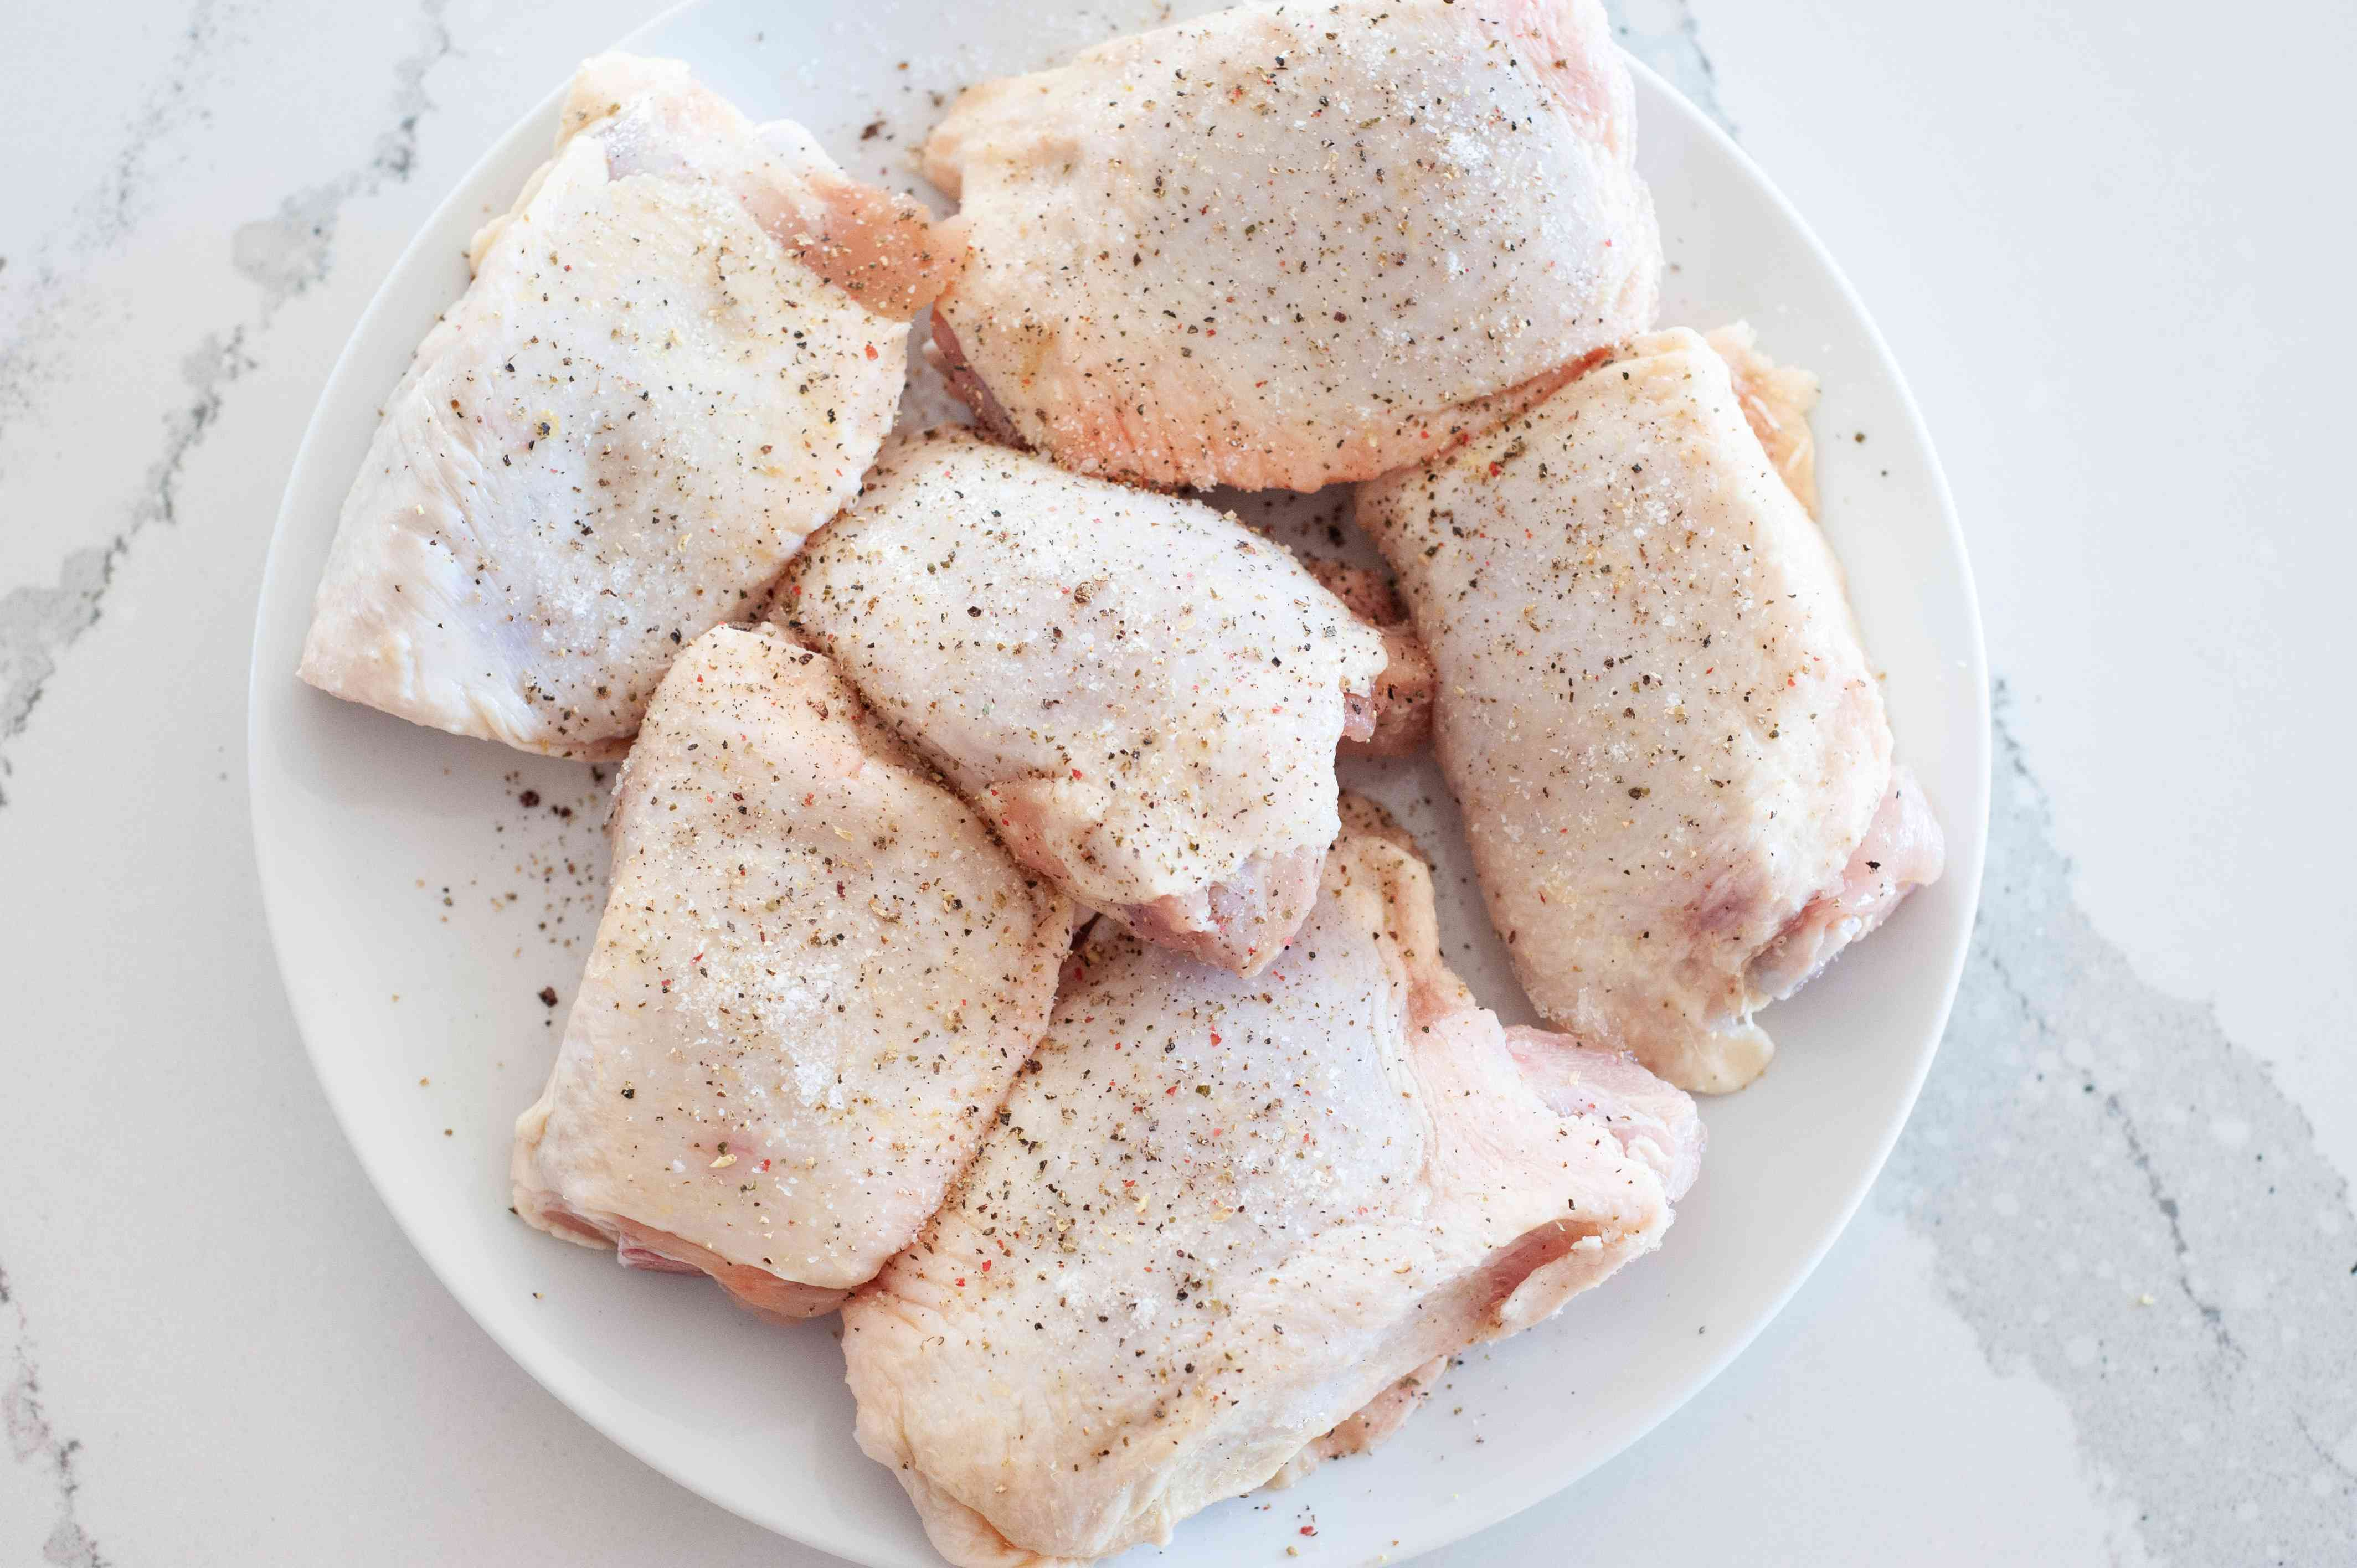 Seasoned chicken thighs on a plate for sheet pan chicken with vegetables.